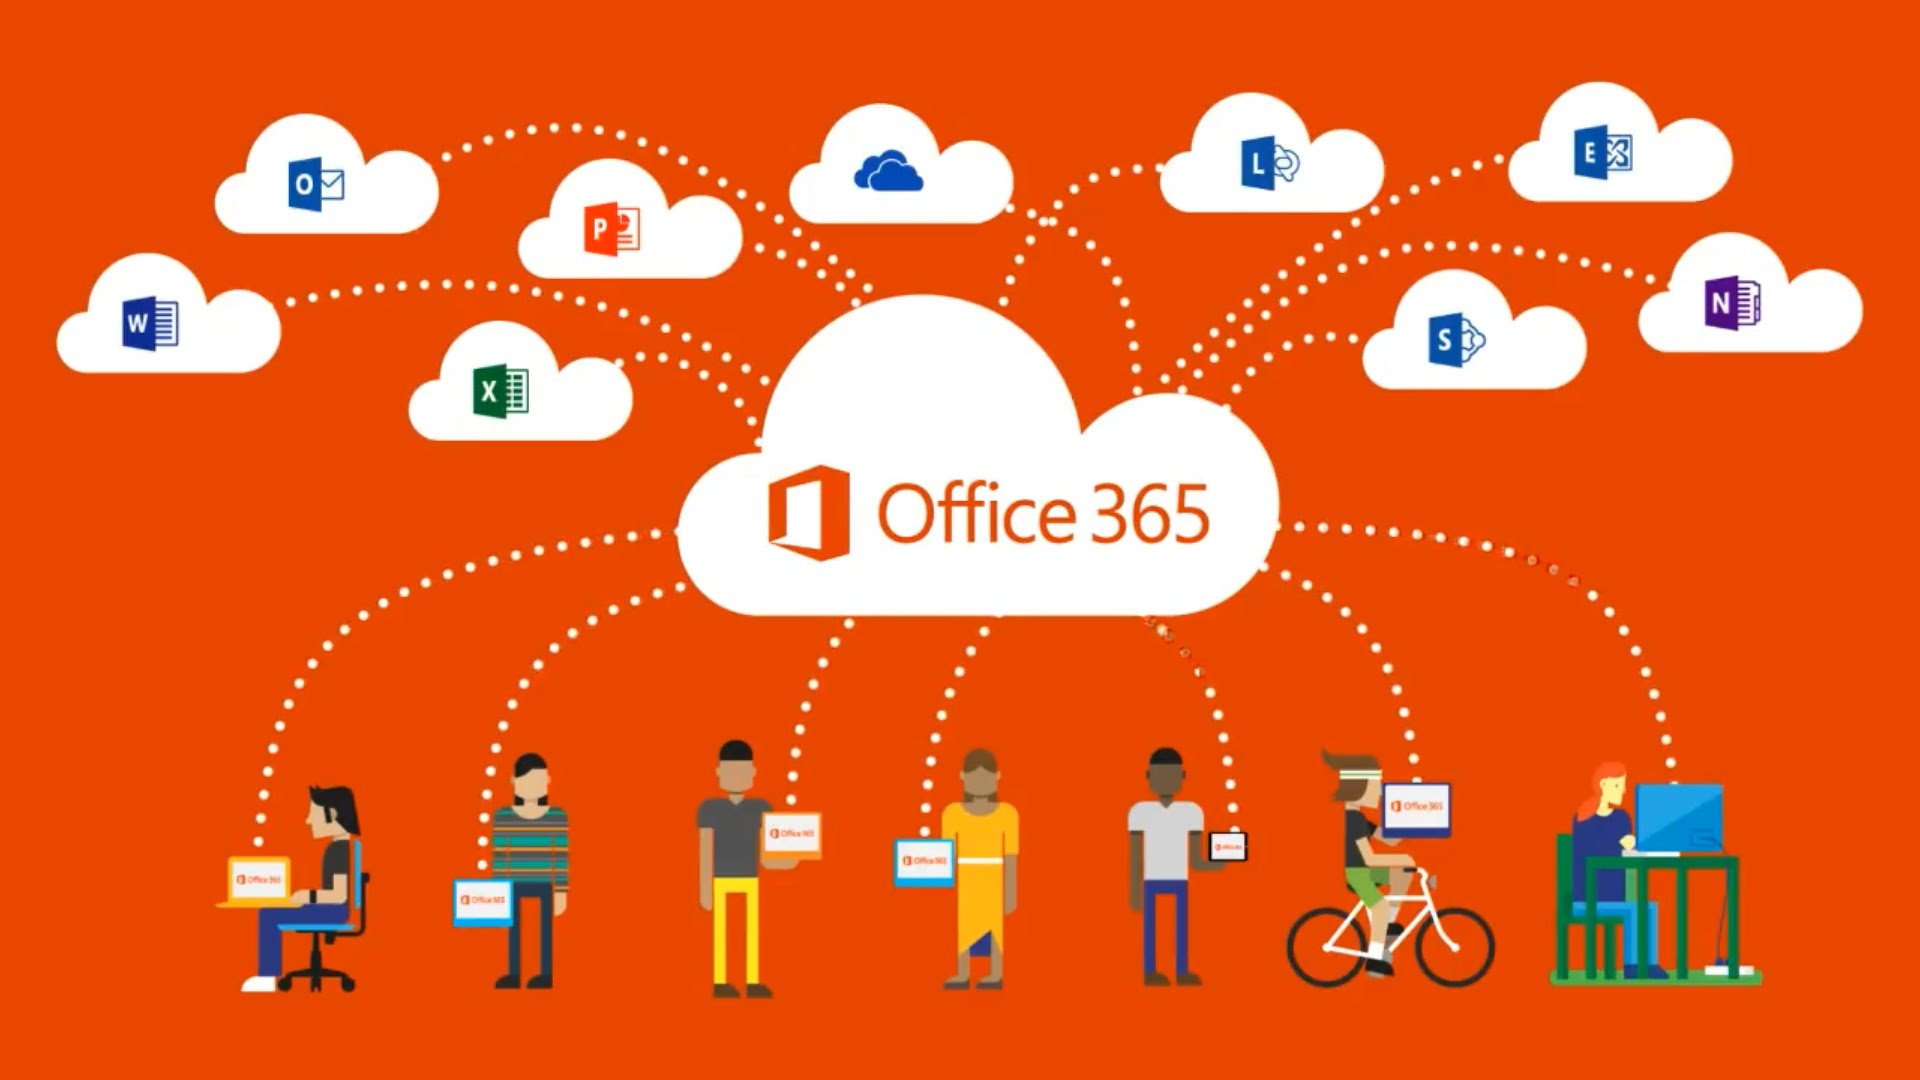 Unsure how to maximize your Office 365 usage?